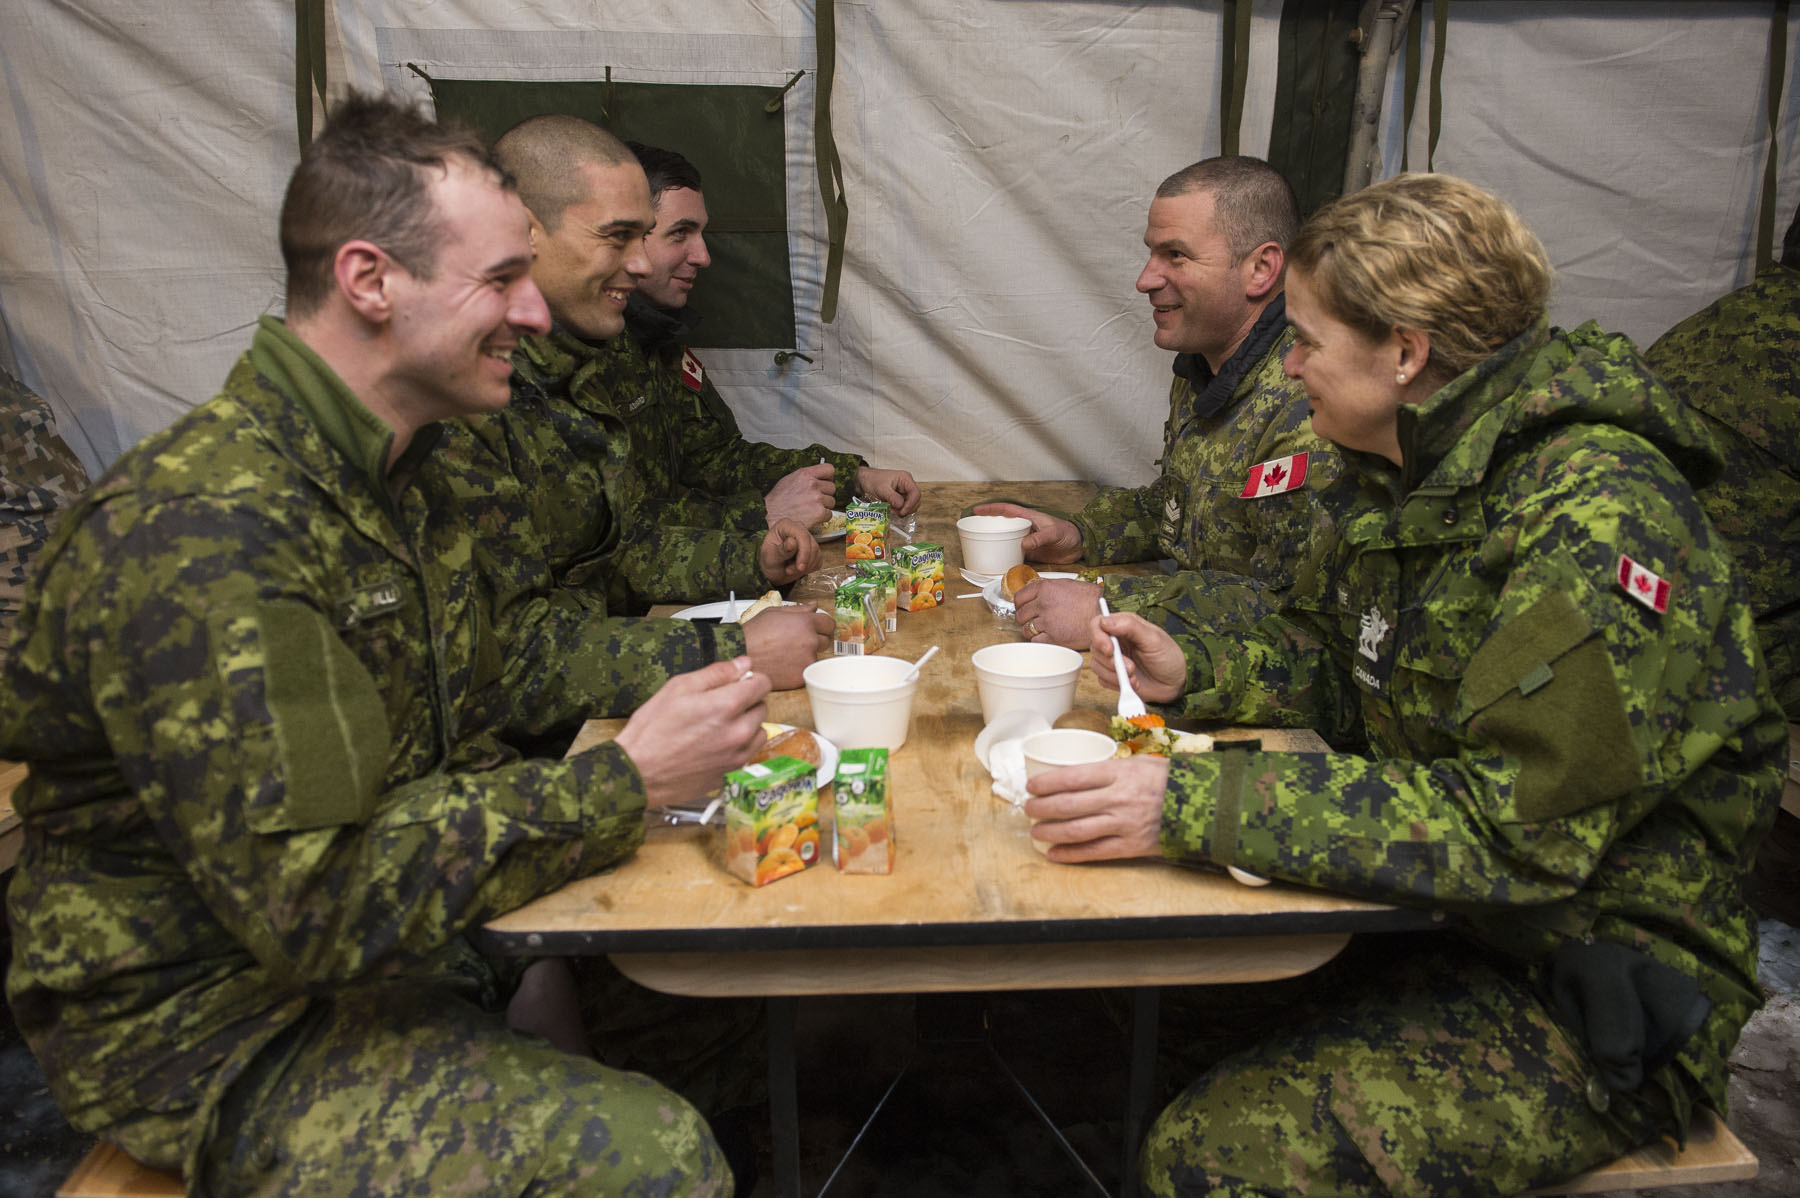 Her Excellency had an opportunity to chat with troops over a meal.